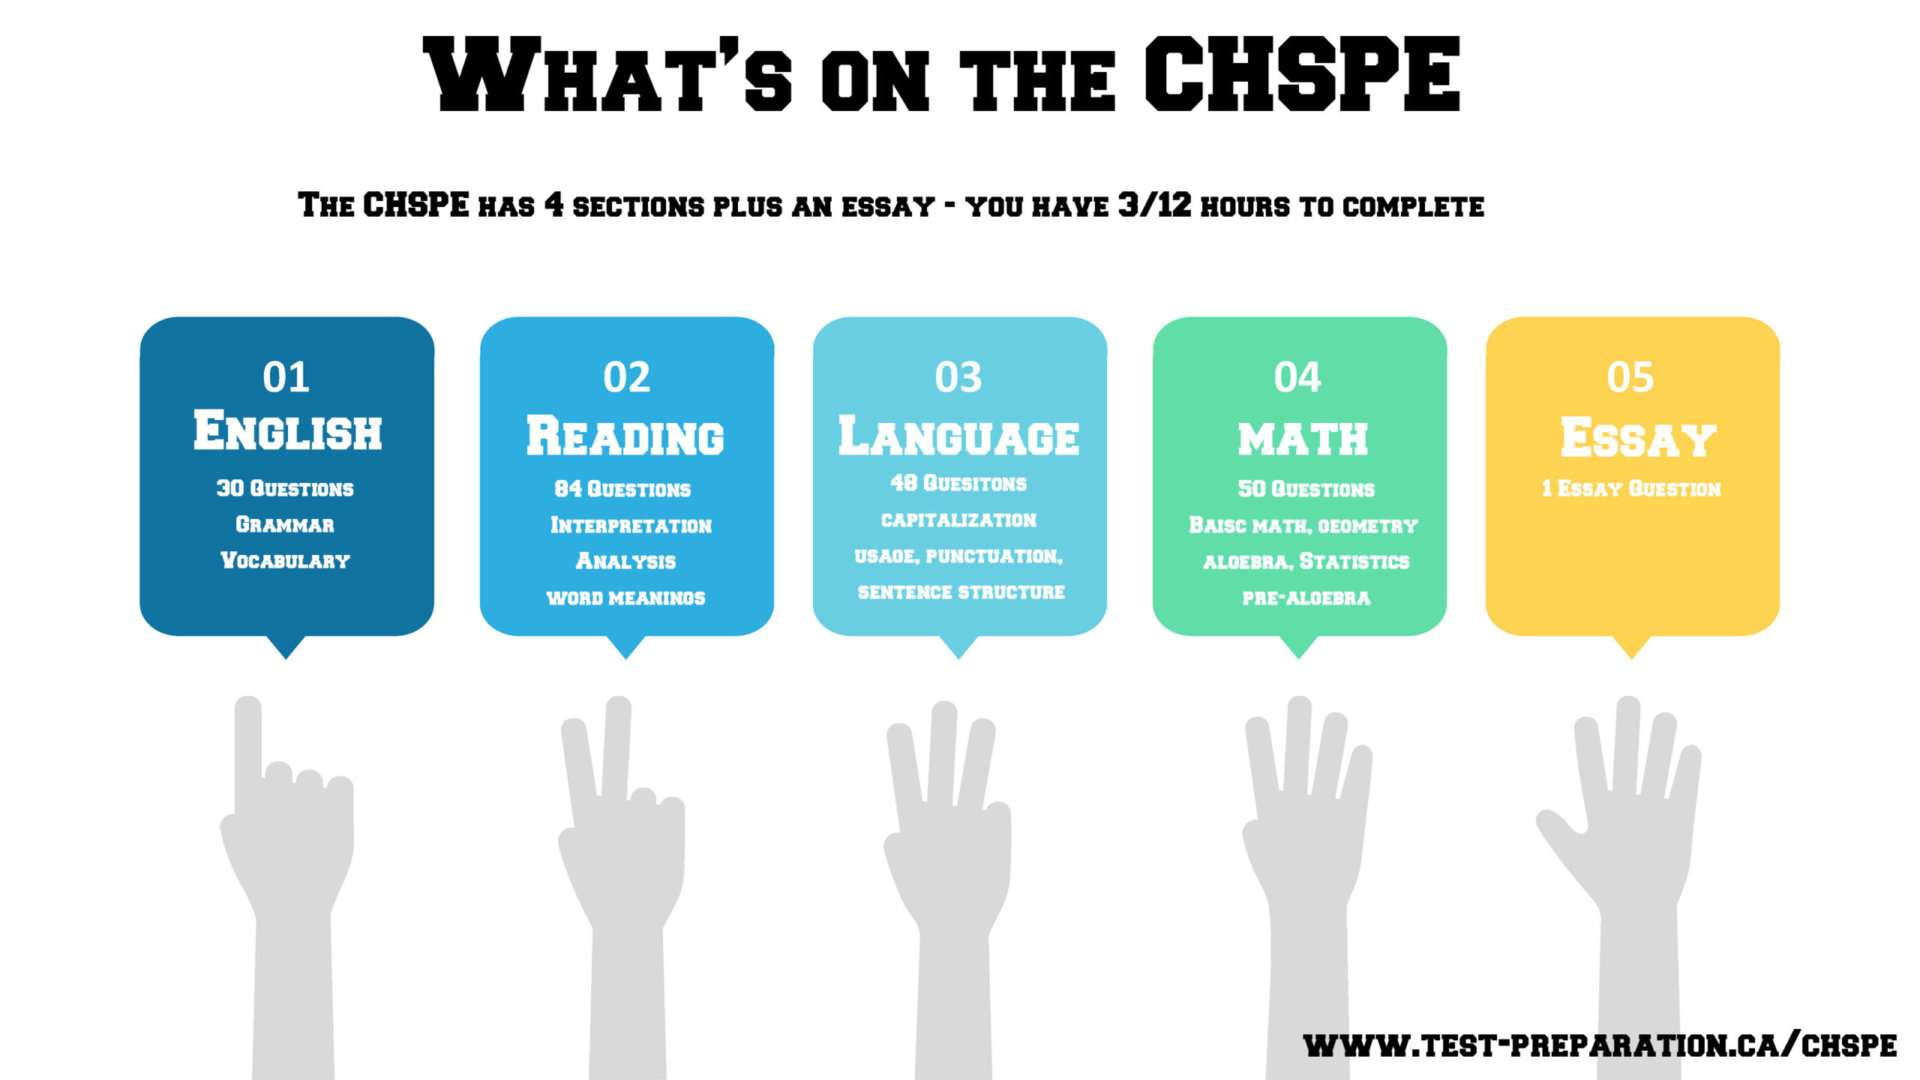 CHSPE Contents